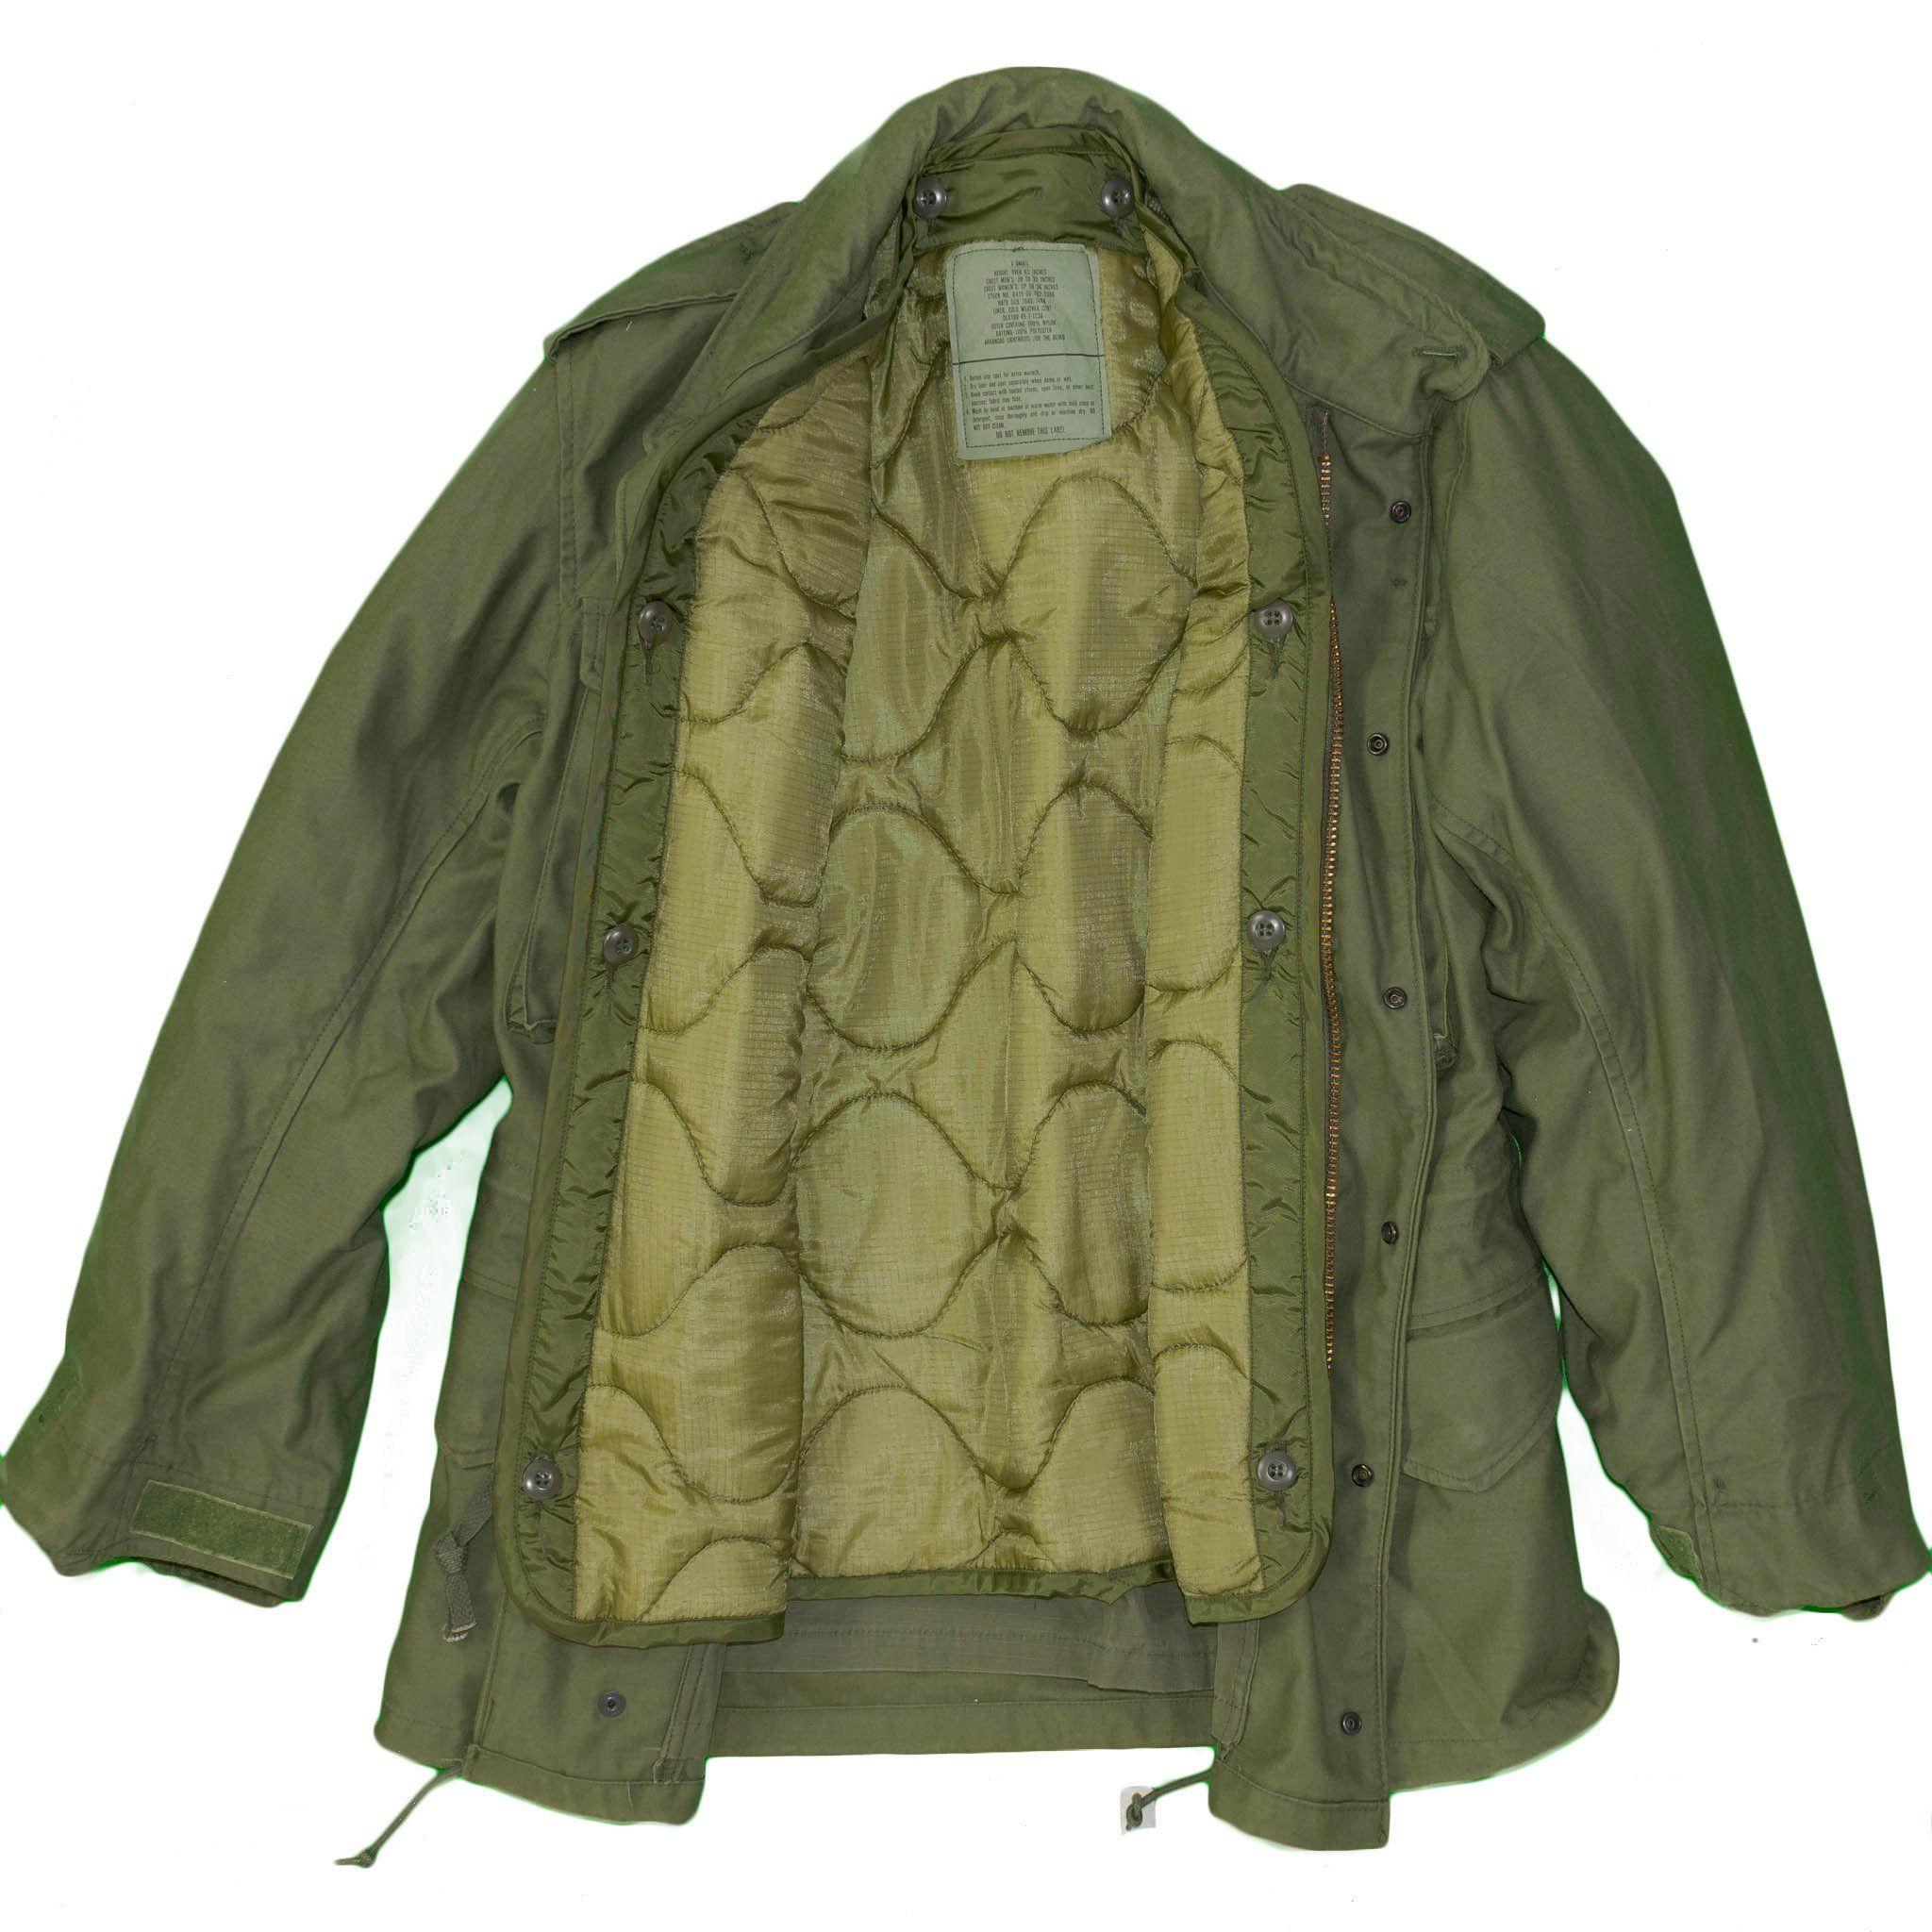 1980 M65 Field Jacket w/ Coat Liner Vintage Military